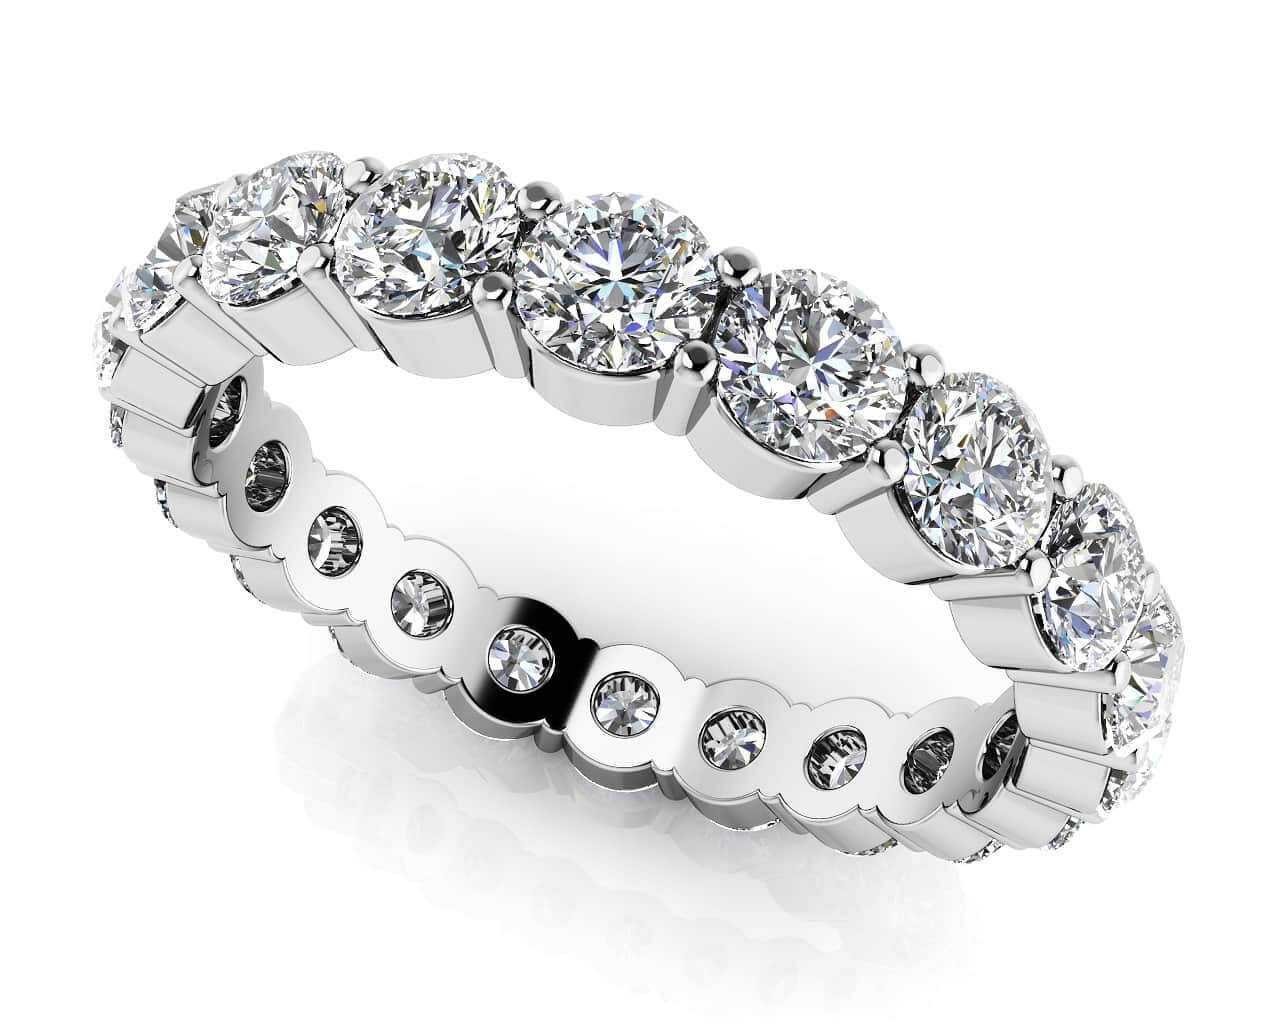 beaverbrooks ring large wedding designs s band context mens bands p the titanium diamond men